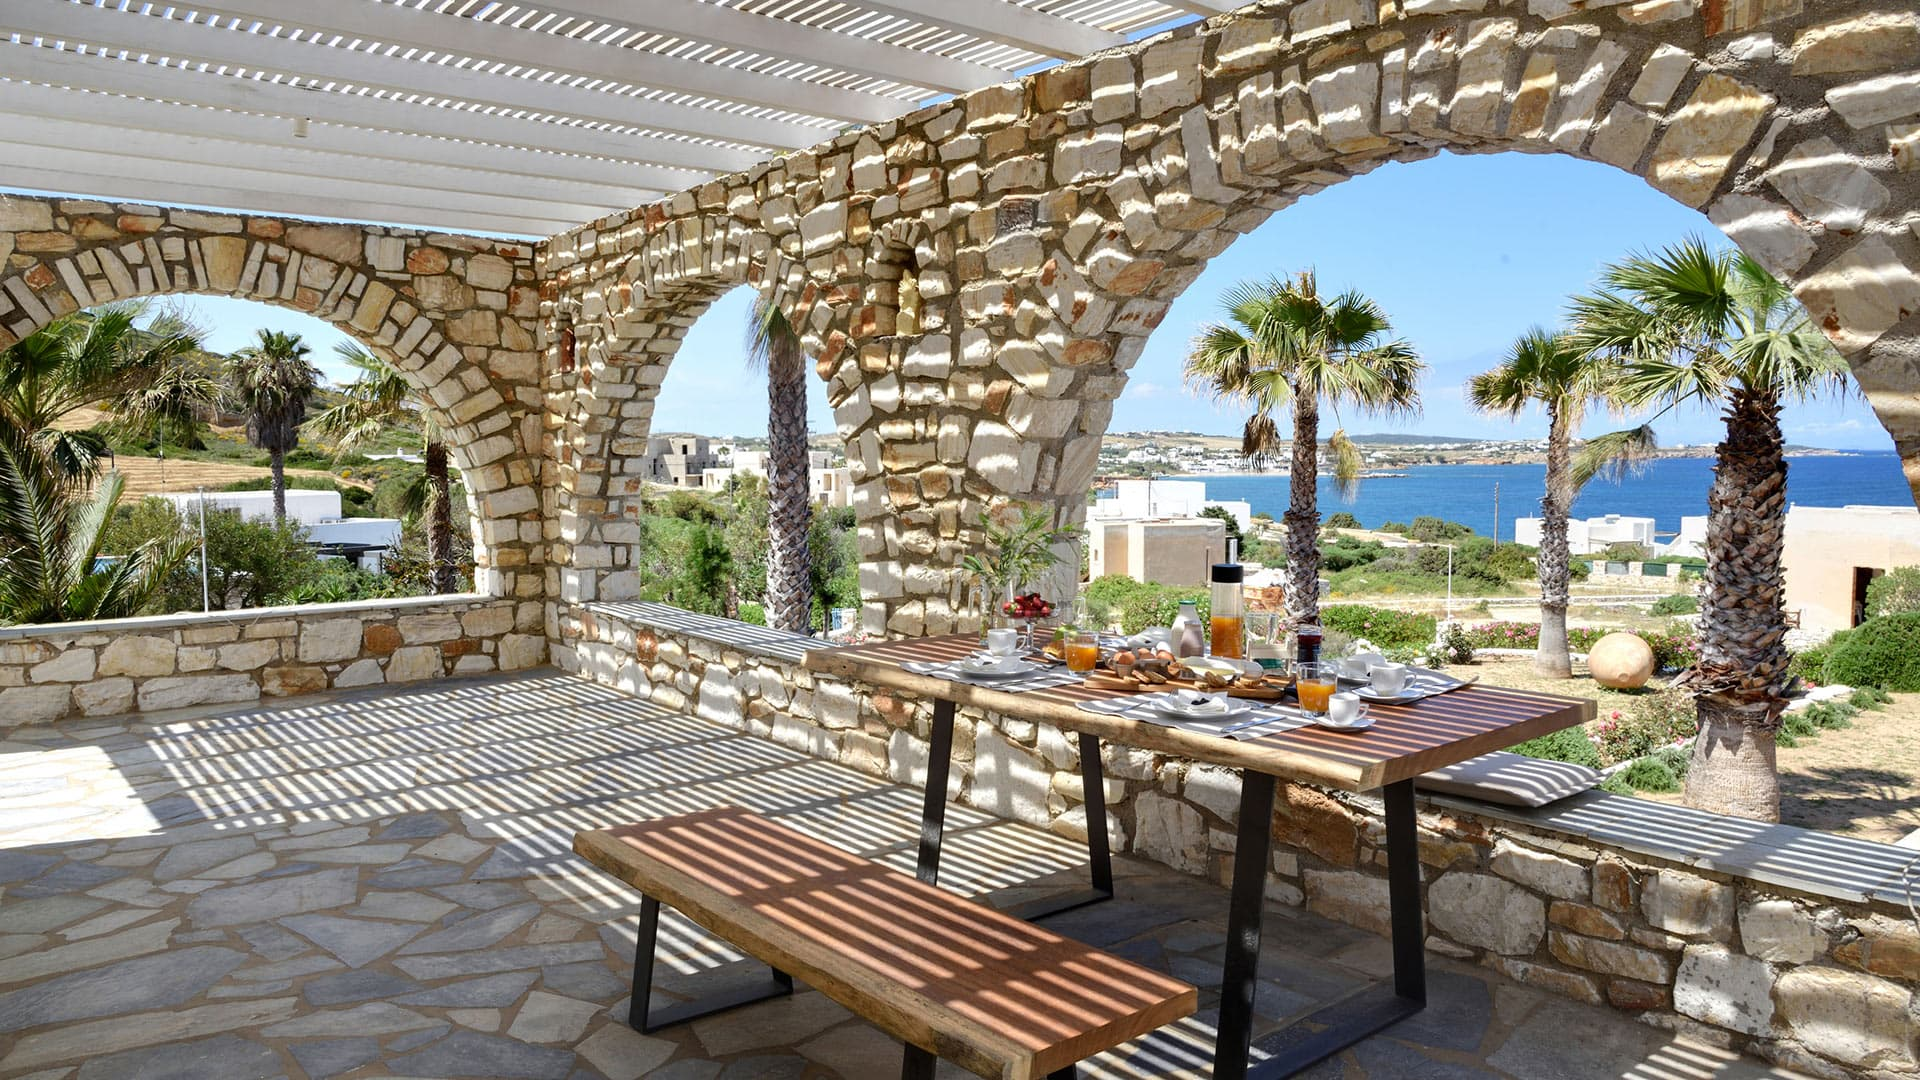 Villa Villa Midas, Rental in Cyclades - Other islands